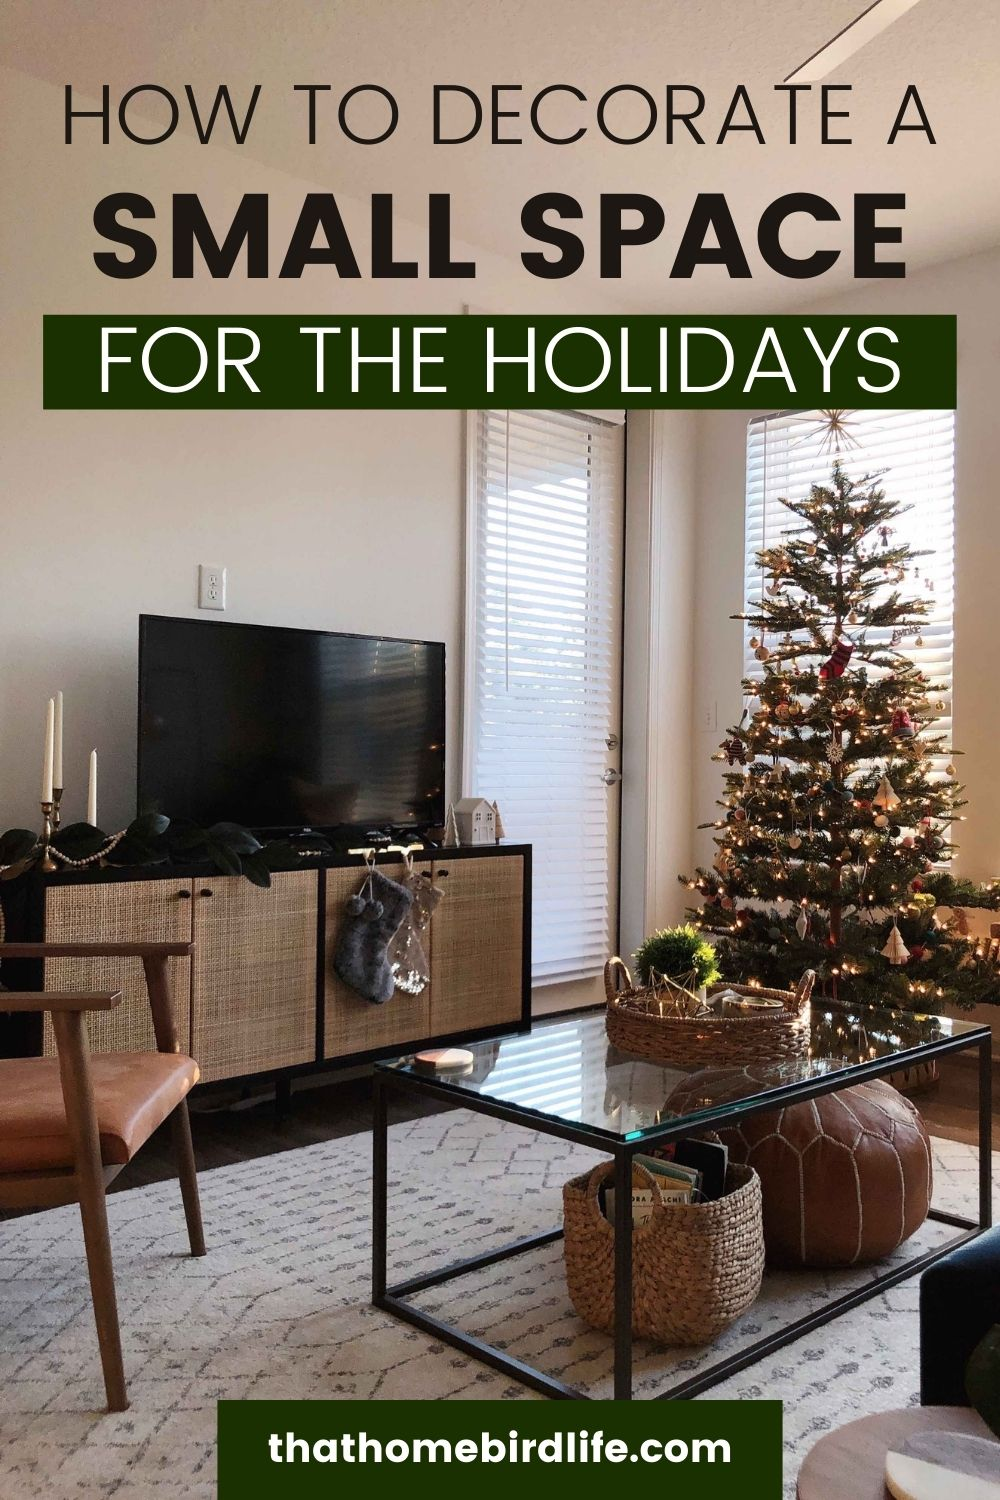 living room with text: how to decorate a small space for the holidays